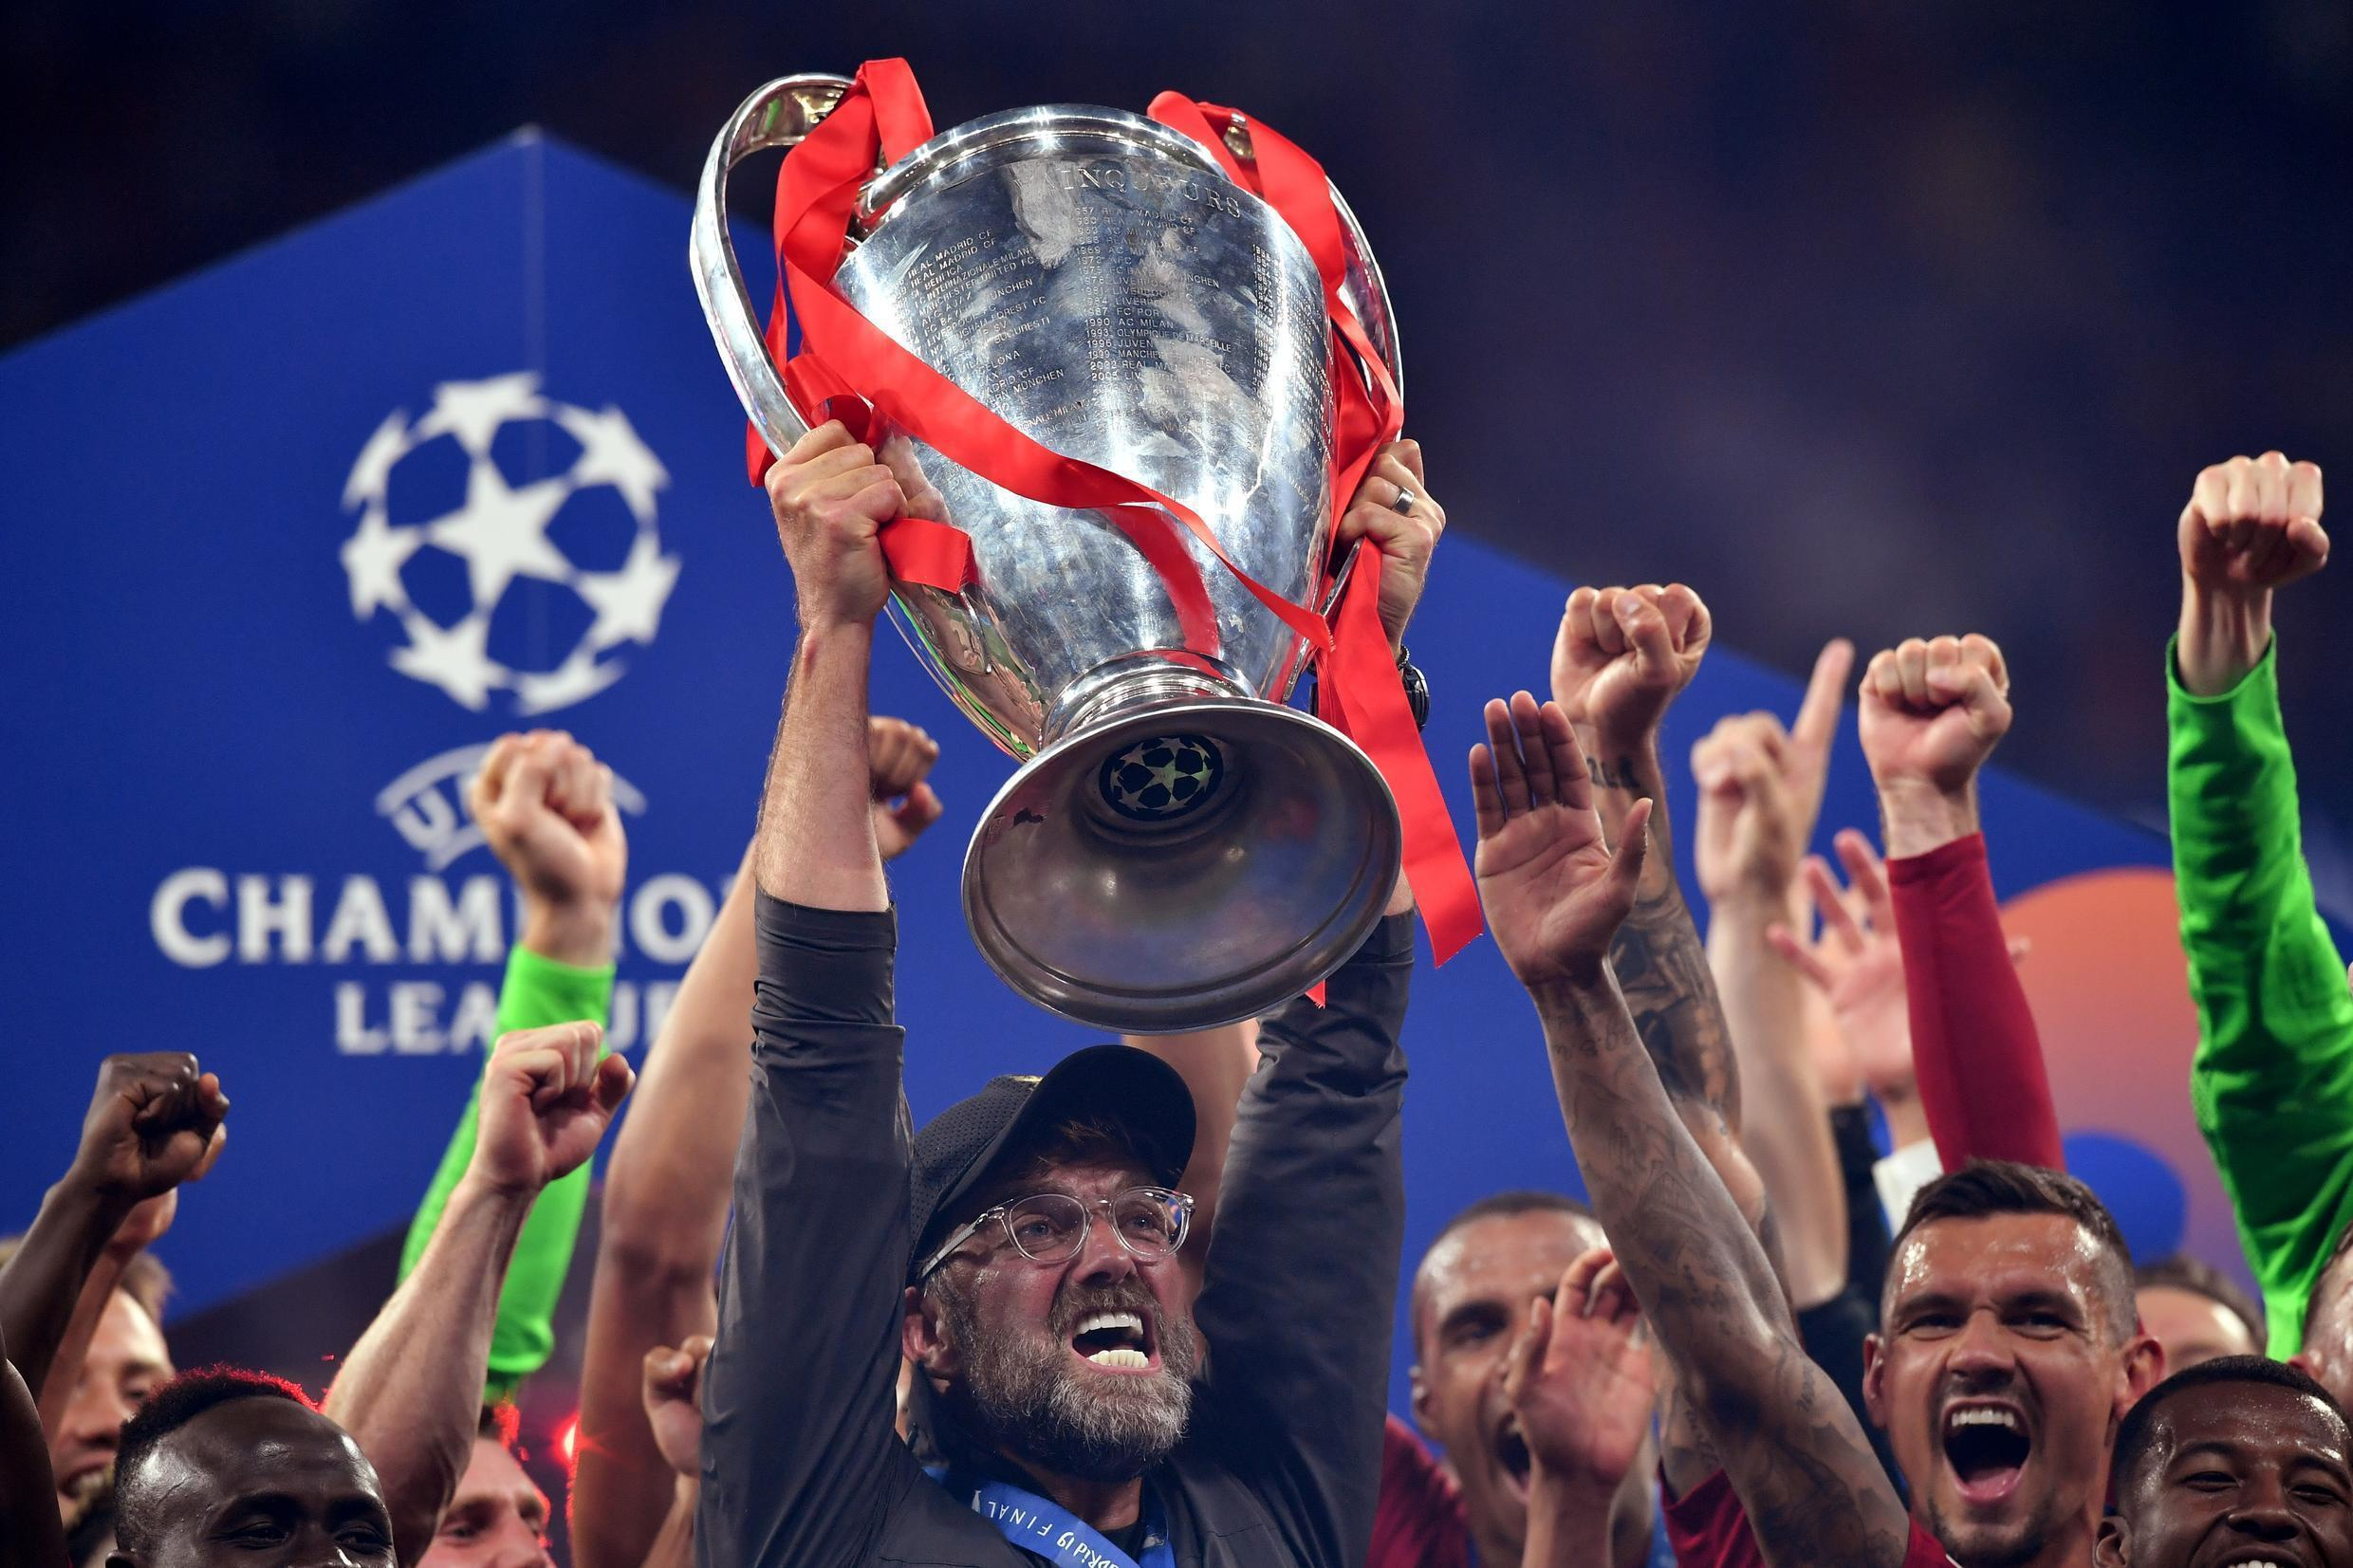 Liverpool won the 2018/19 Champions League title after beating Tottenham Hotspur in the final. The 2020 showdown should have taken place in Istanbul but will be played in Lisbon.